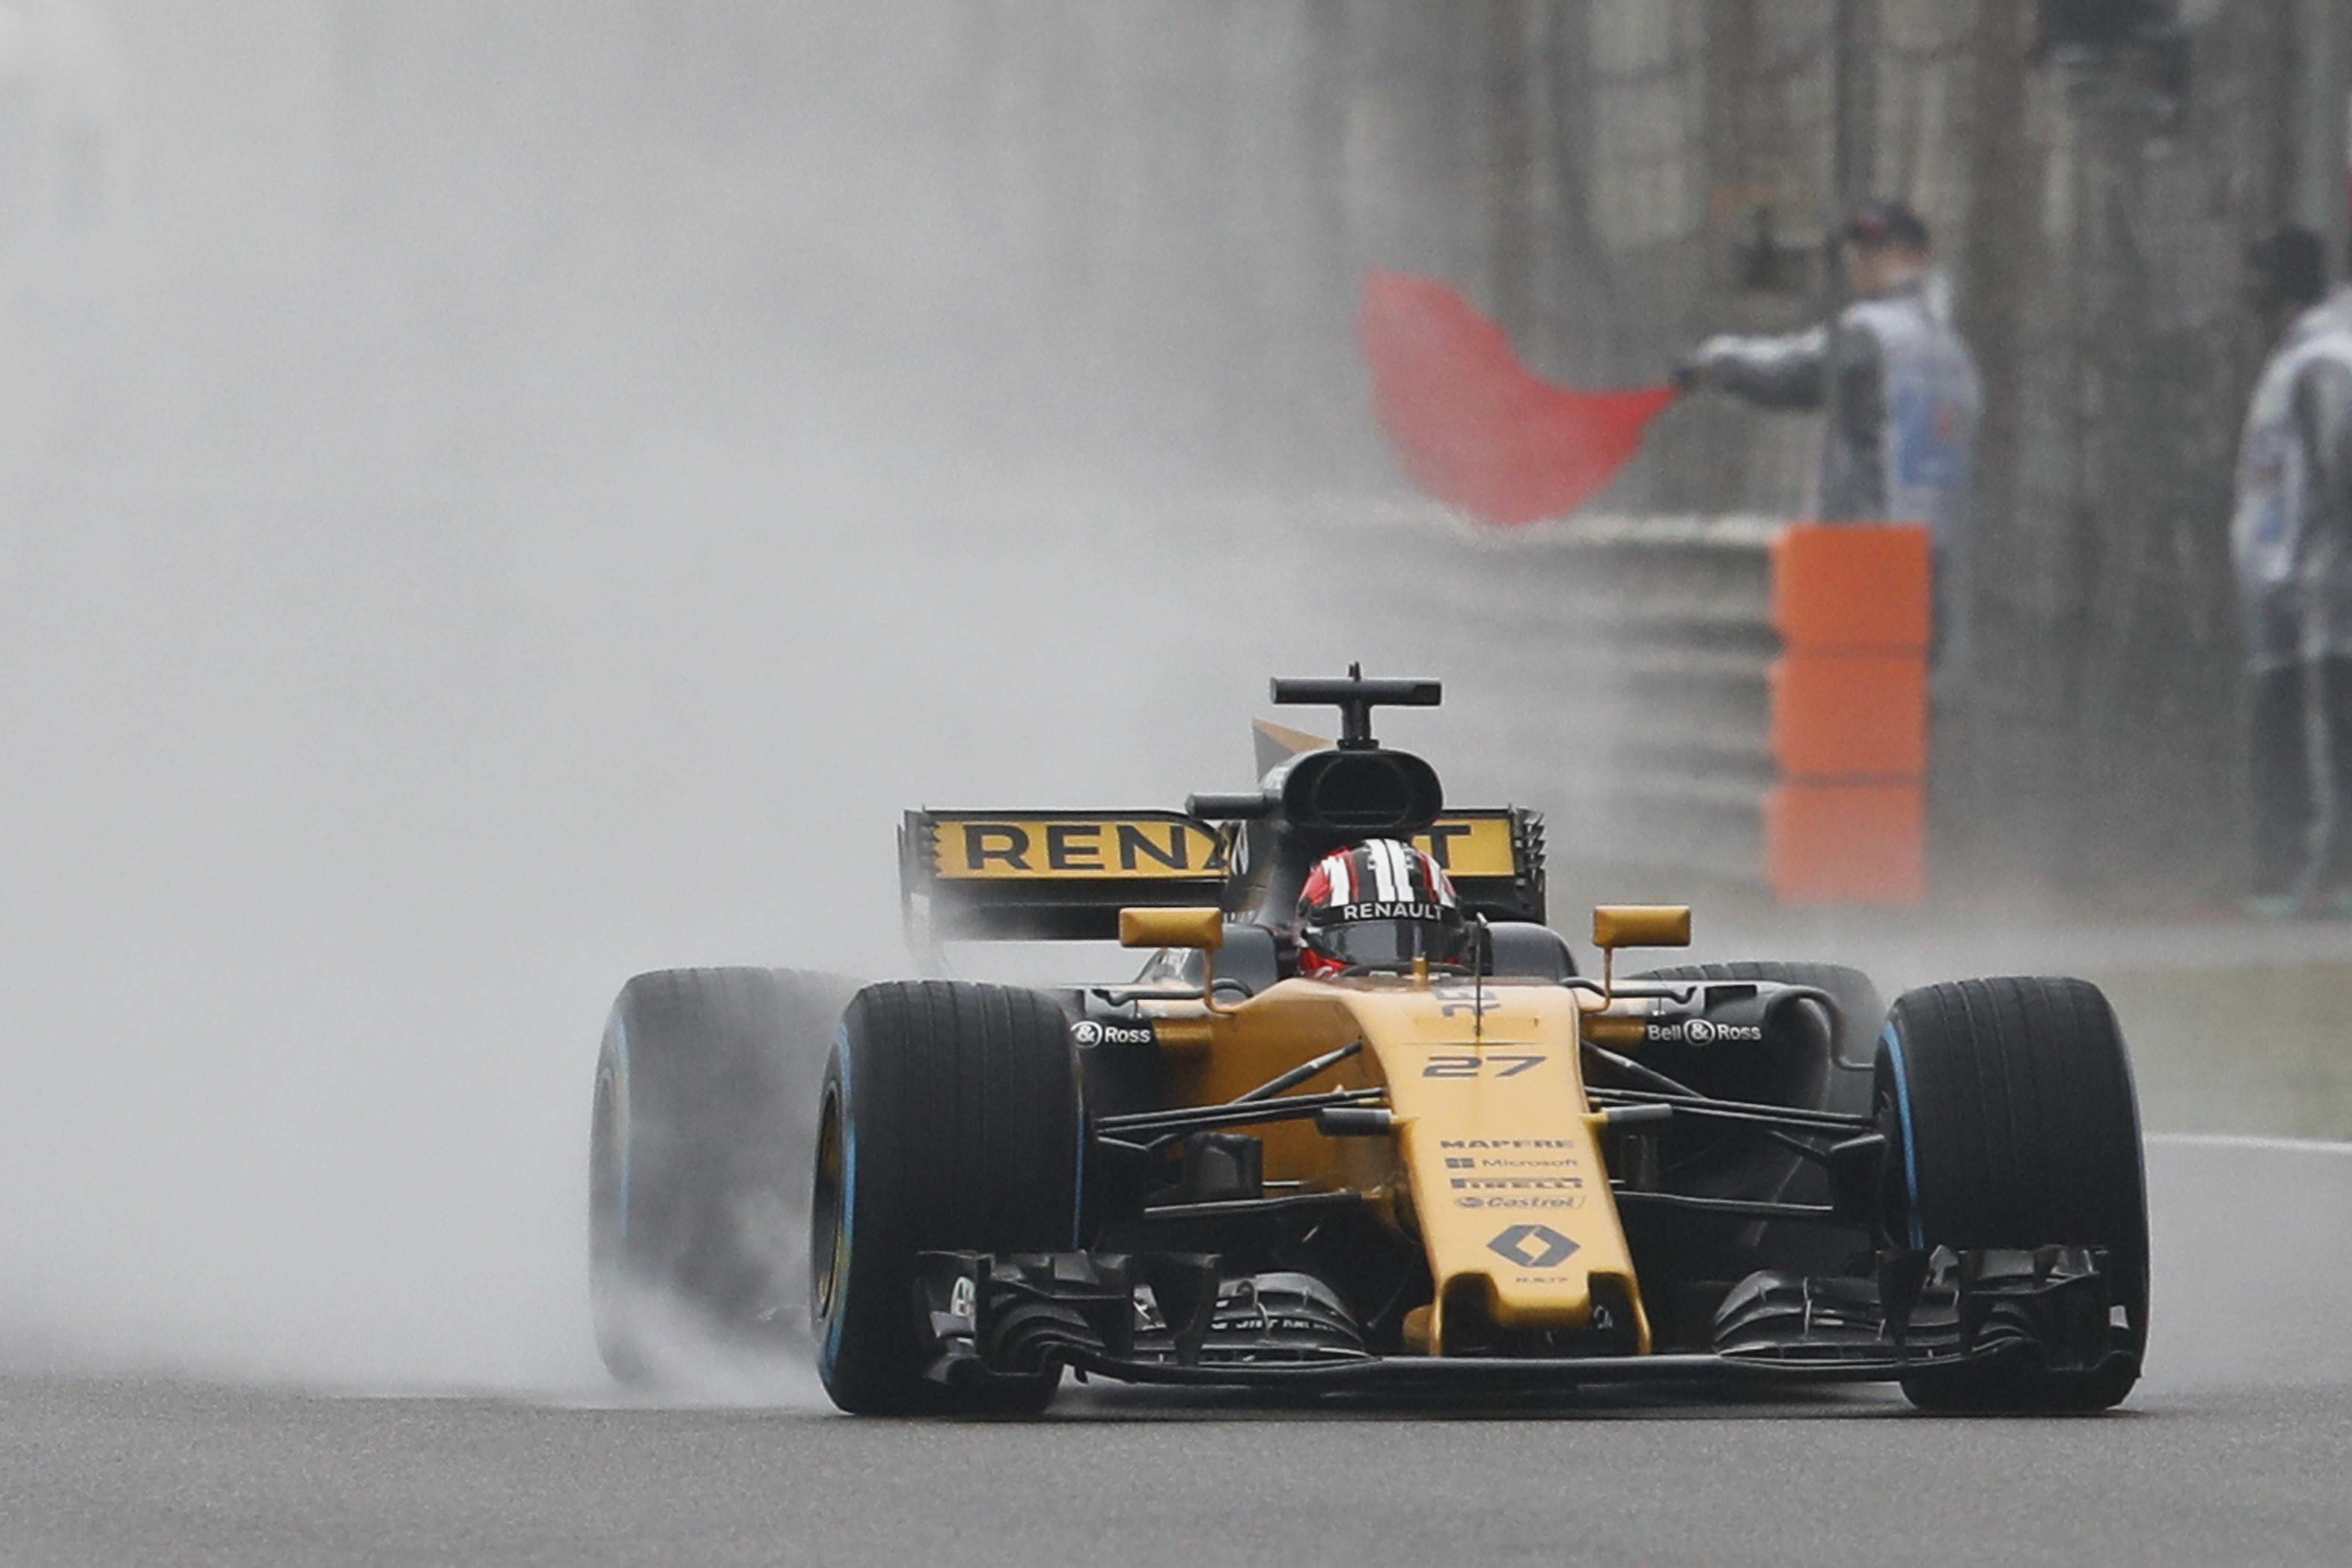 Renault driver Nico Hulkenberg of Germany steers his car past a track marshall waving a red flag during the first practice session for the Chinese Formula One Grand Prix in Shanghai, China, Friday, April 7. (AP Photo/Andy Wong)